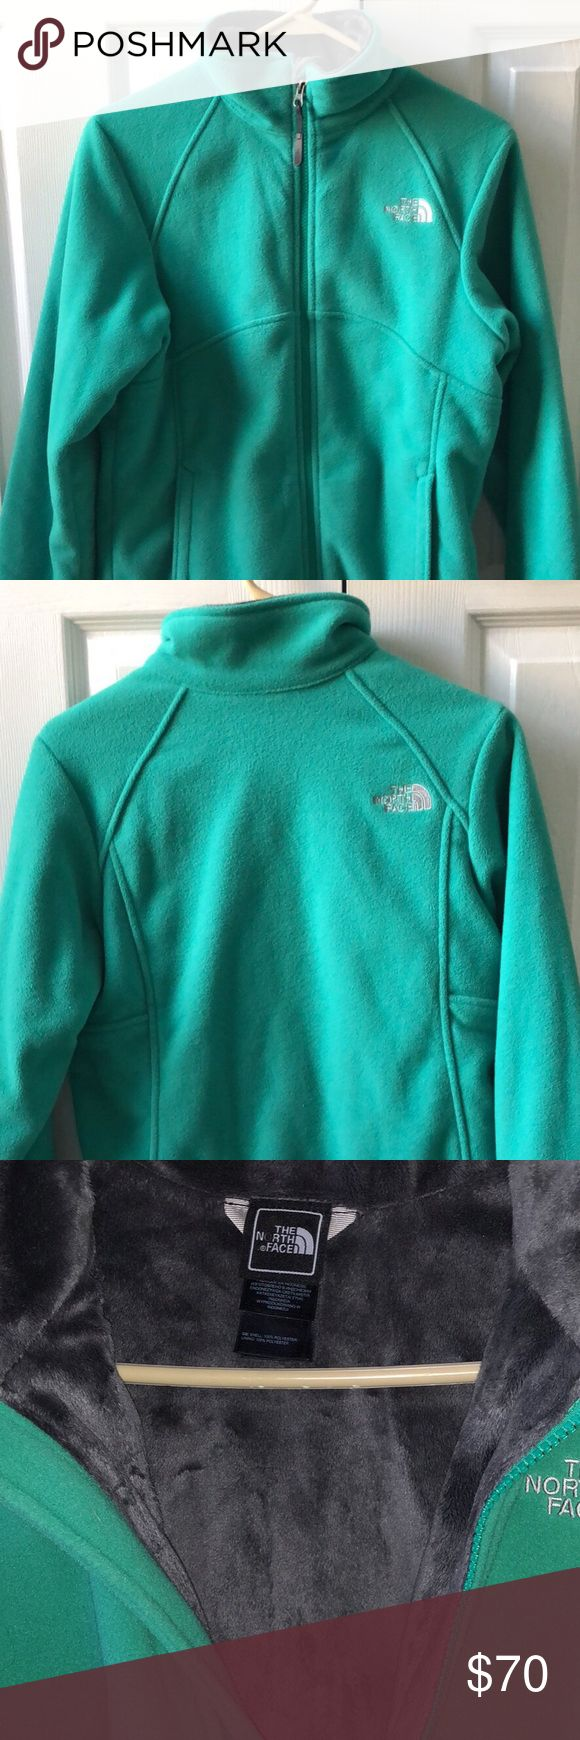 Girls North Face Jacket Like new, barely worn. Super soft inside gray fur! I wear a women's small and fit comfortably in this. North Face Jackets & Coats